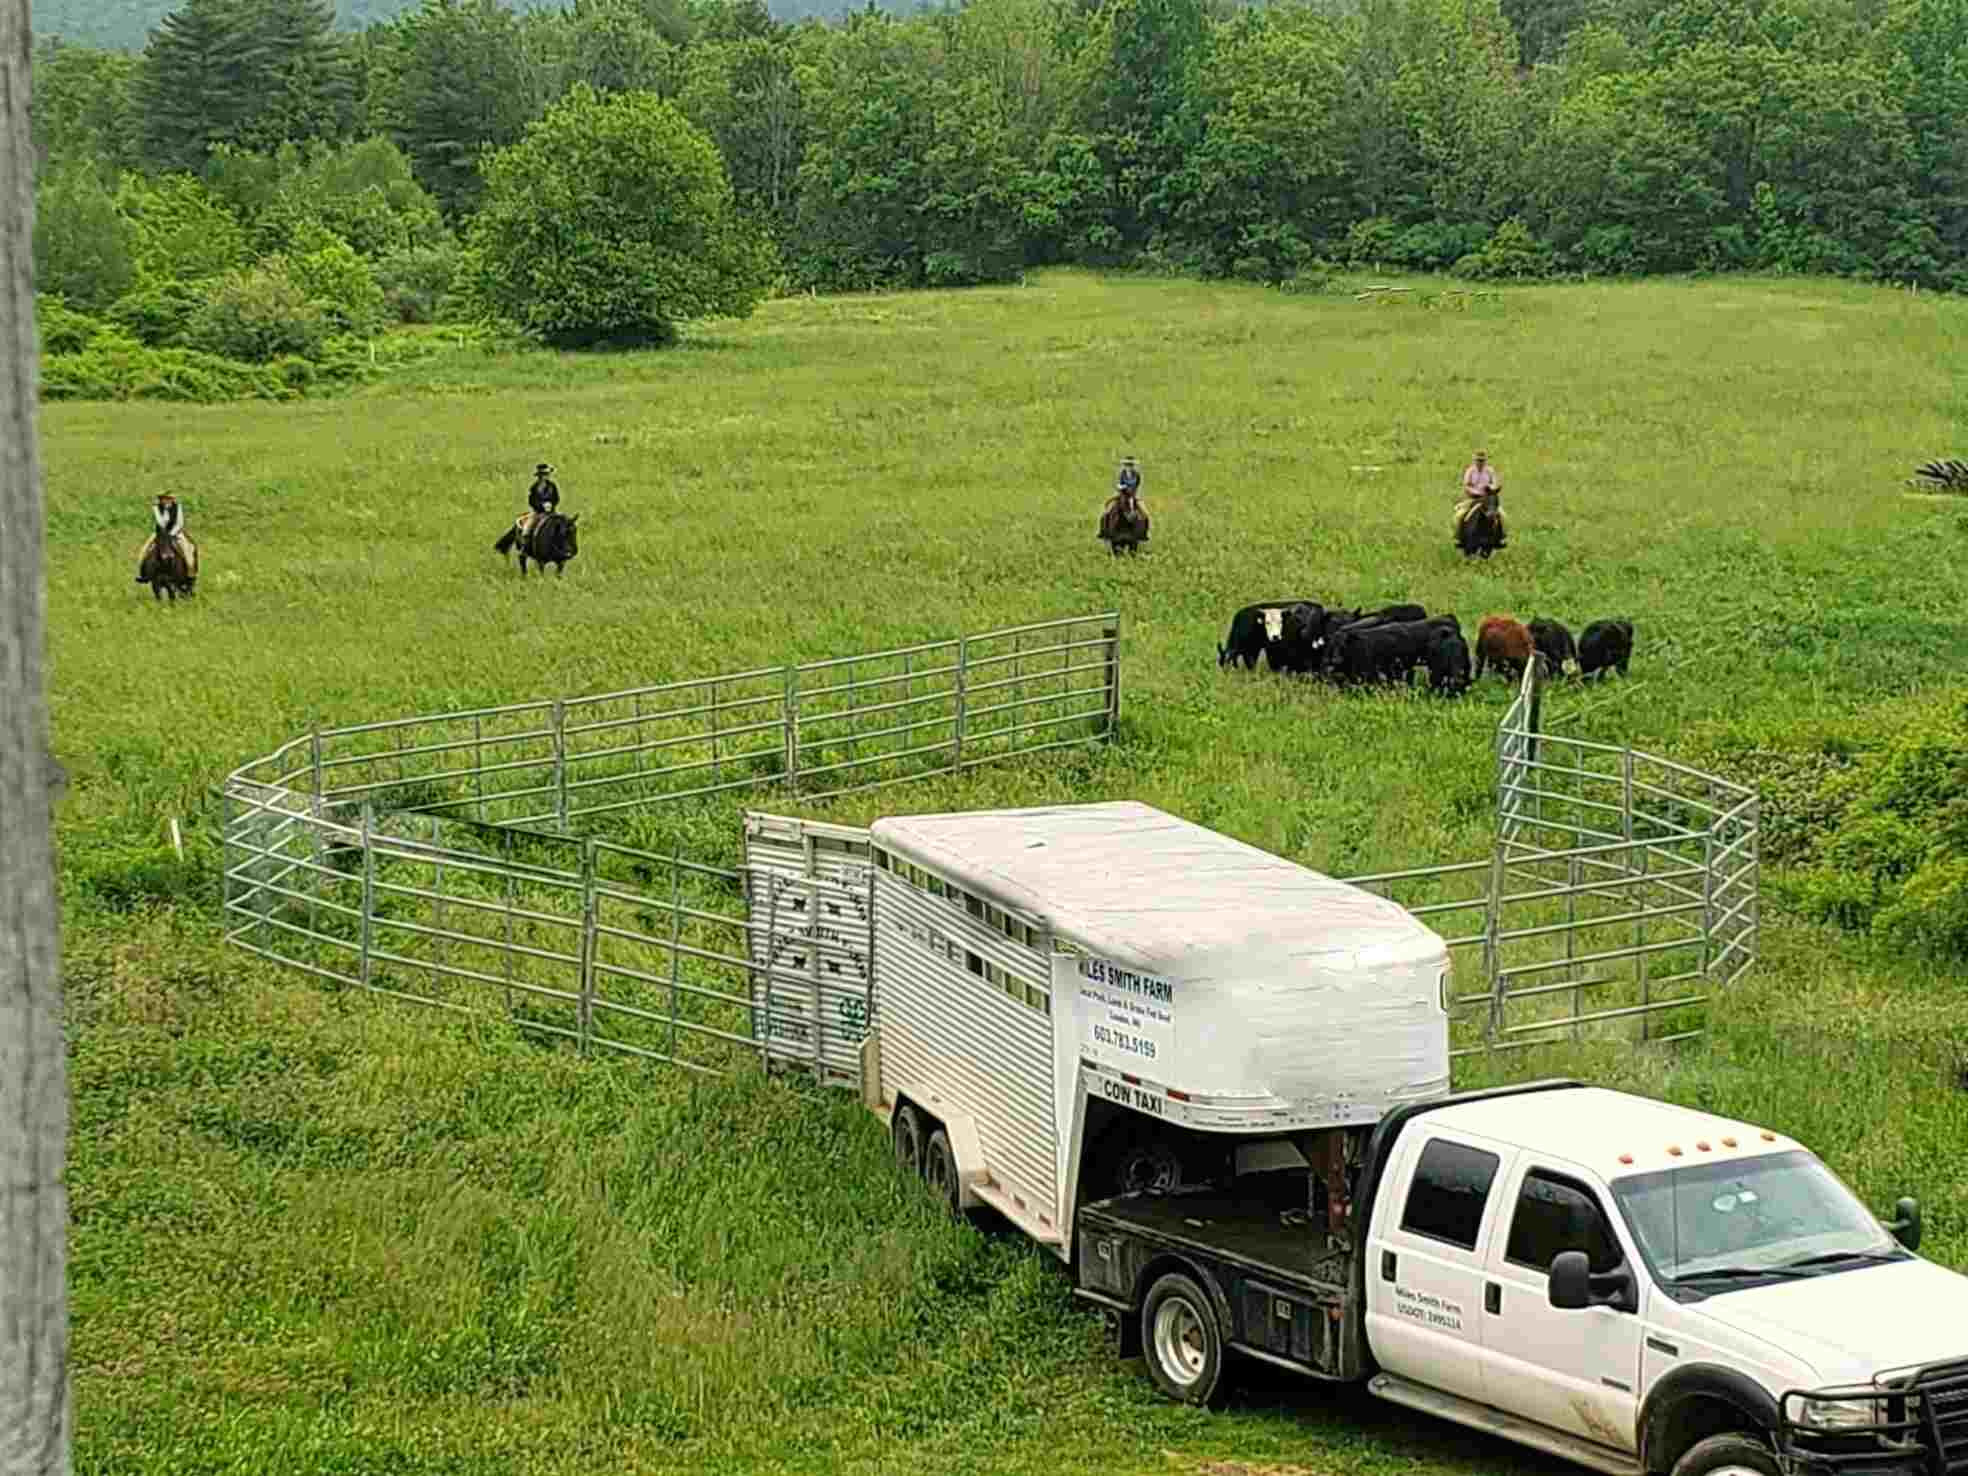 Capturing Cattle the Old-Fashioned Way